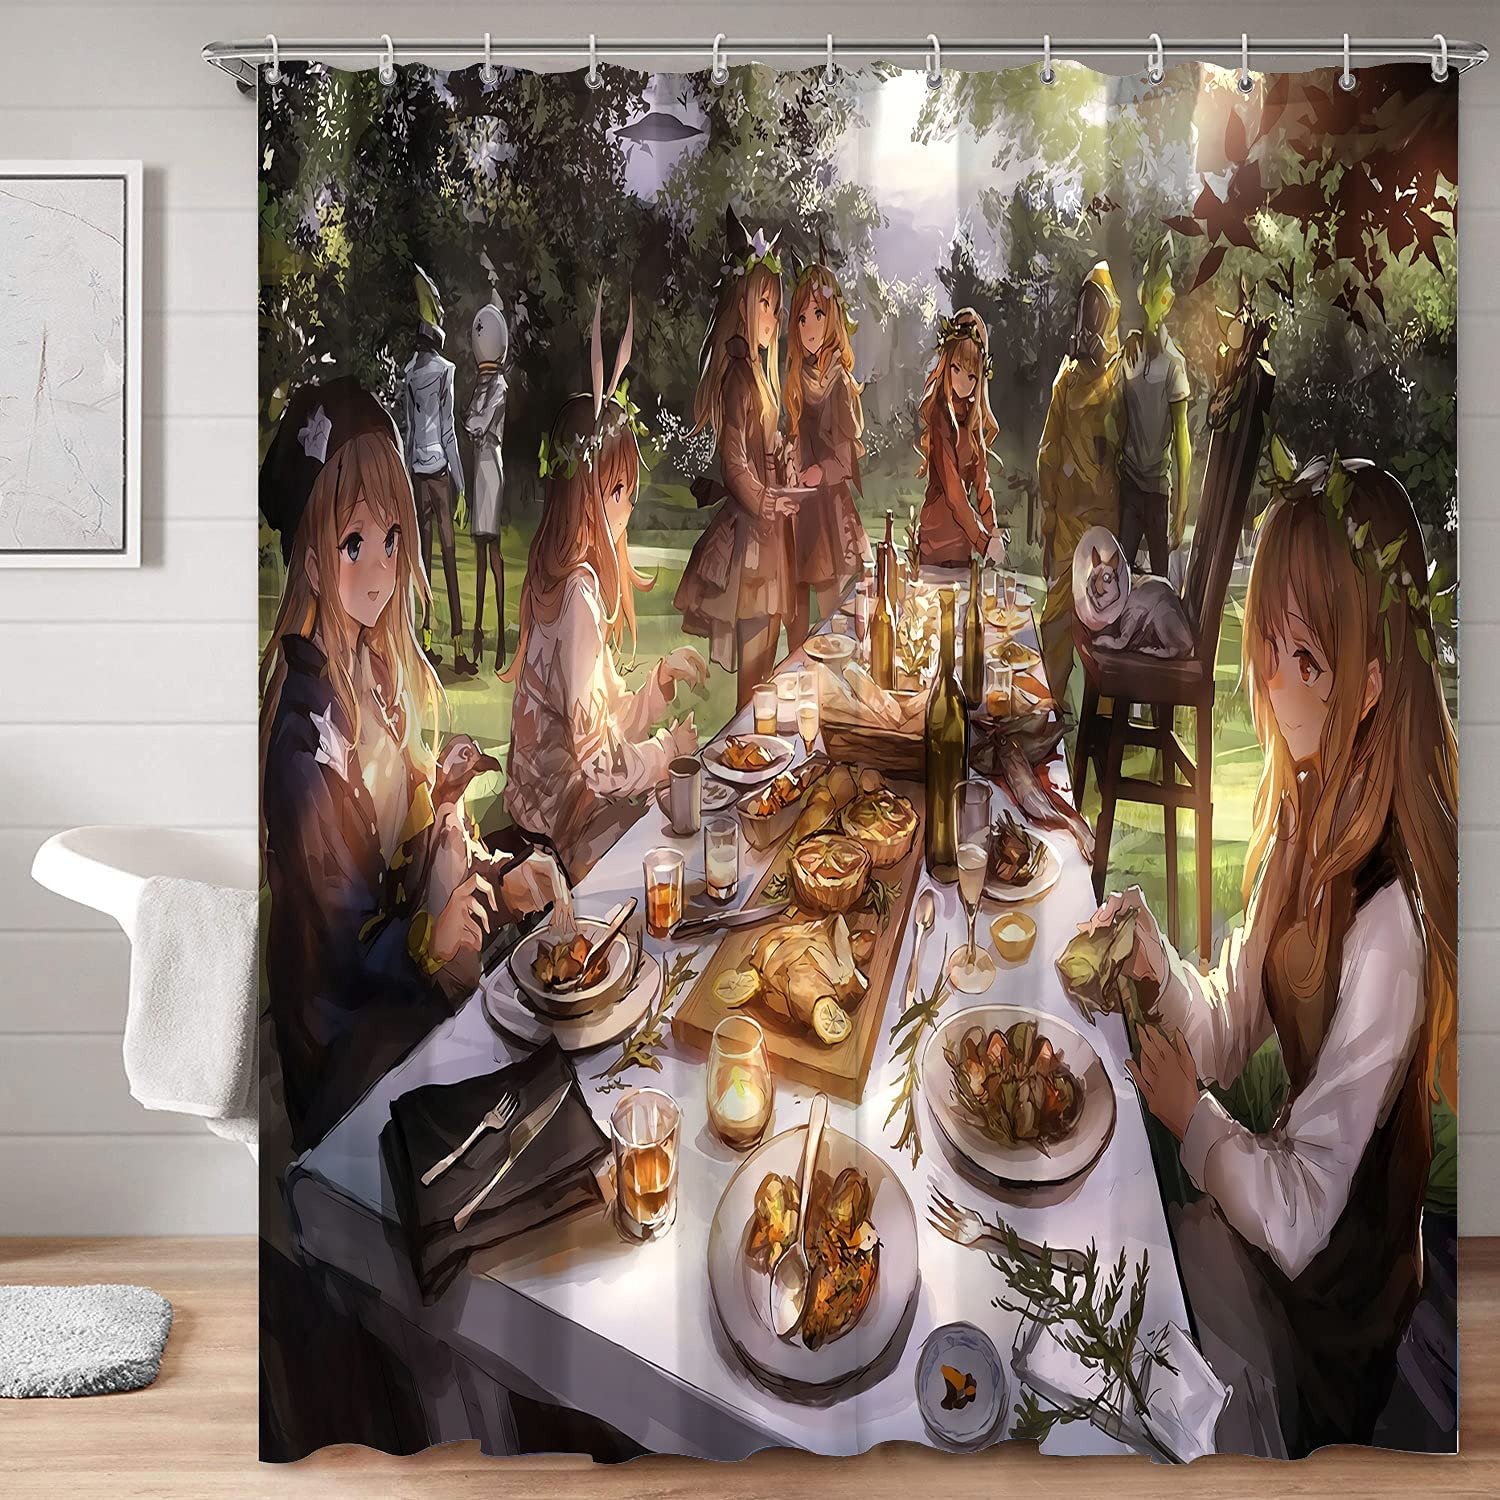 HSERNED Decor Creative Home Today's only Landscape Decorative Max 69% OFF Bathroom Anime